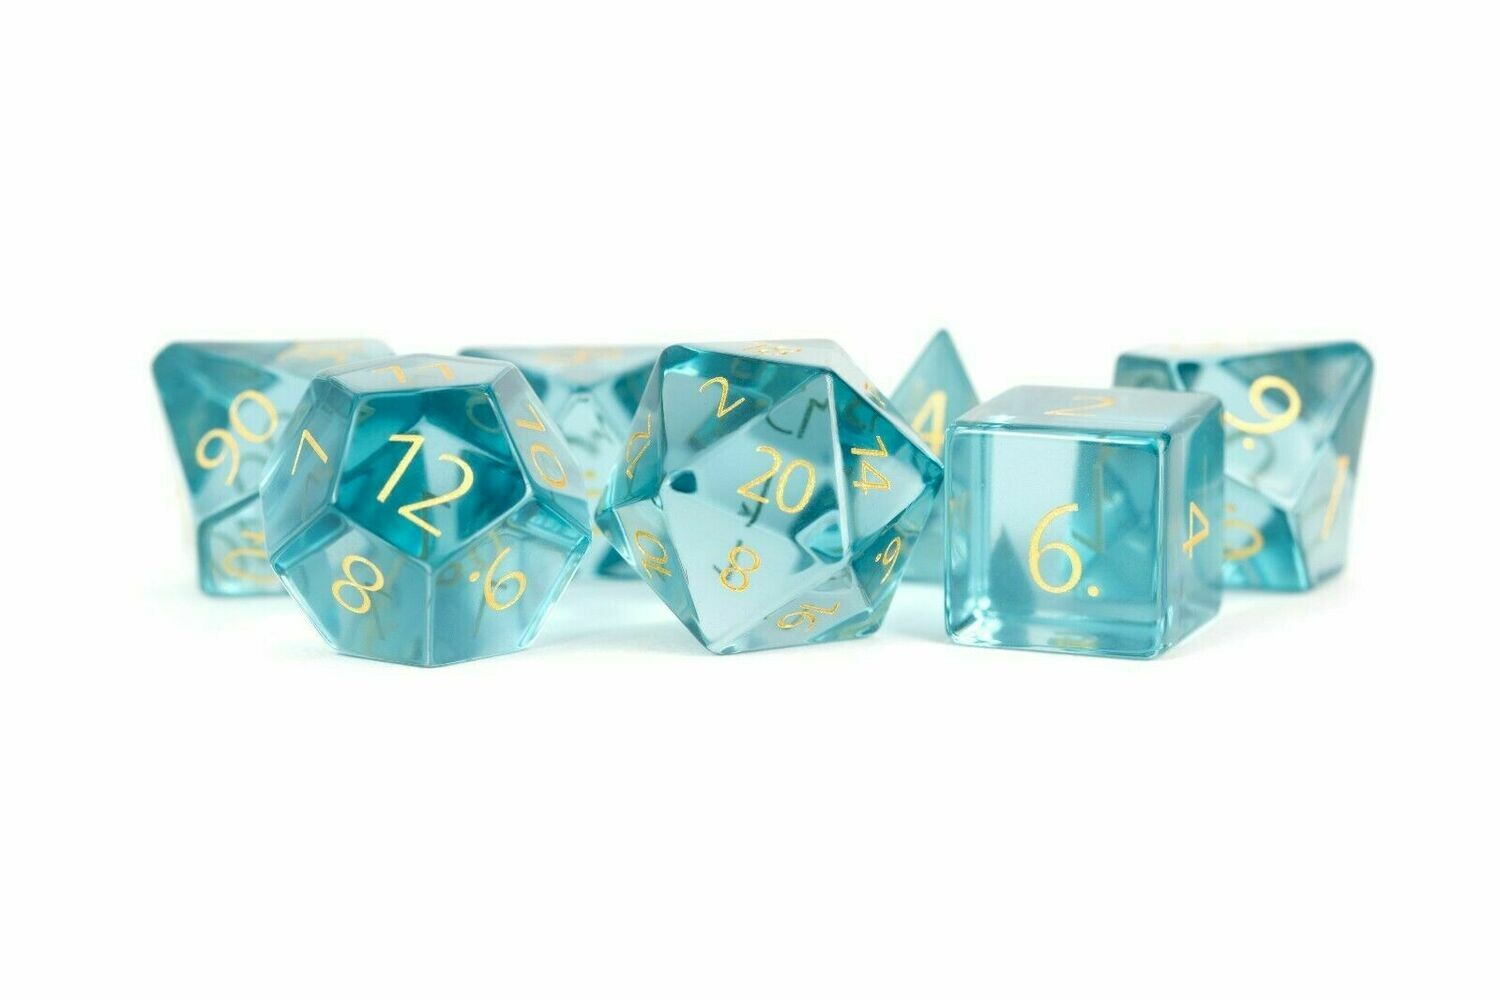 Zircon Glass Birthstone Dice: March- Aquamarine Polyhedral Set RPG Tabletop Game